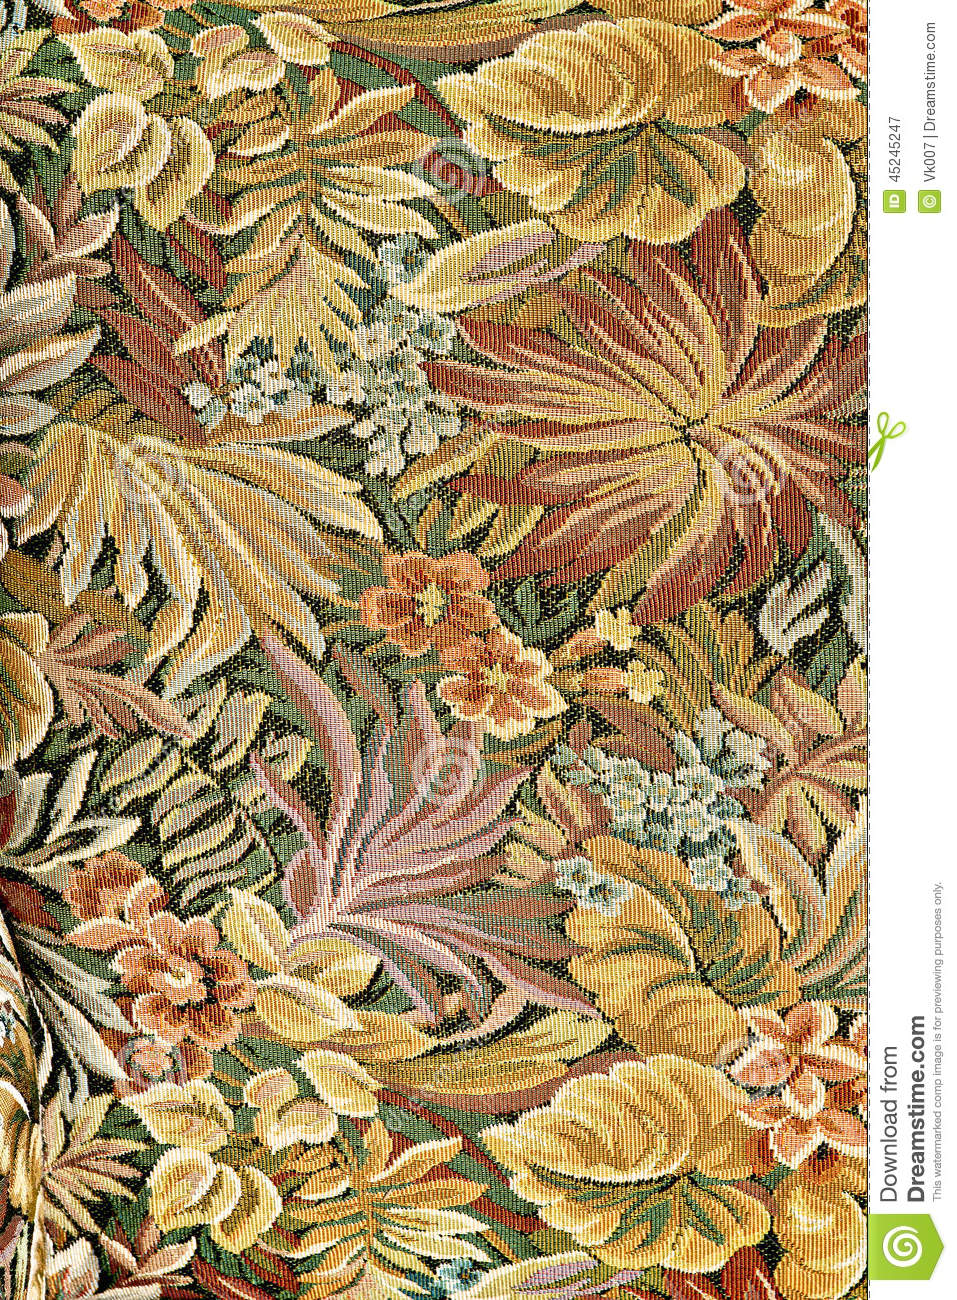 Pattern Classical Ornate Floral Tapestry Stock Image Antique Carpet